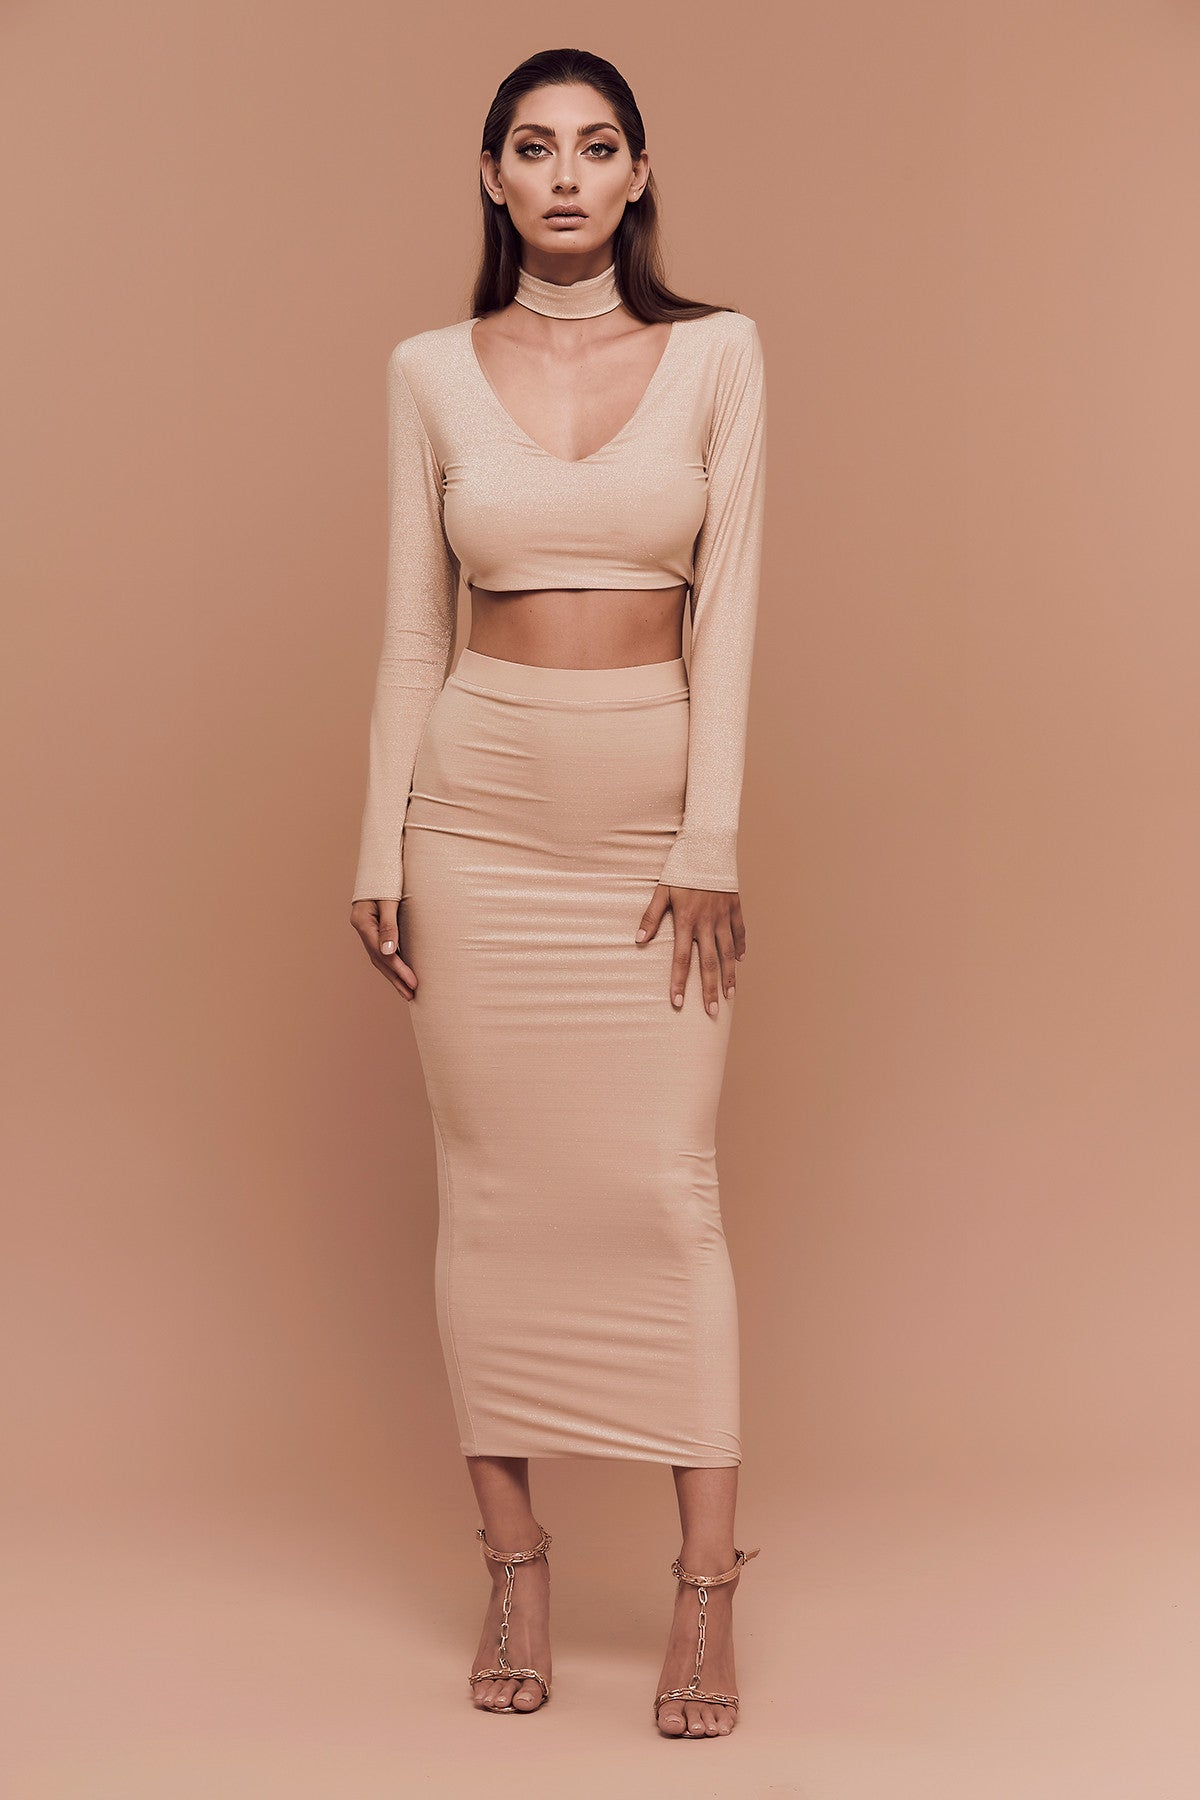 Kylie Skirt (pink) zoomed